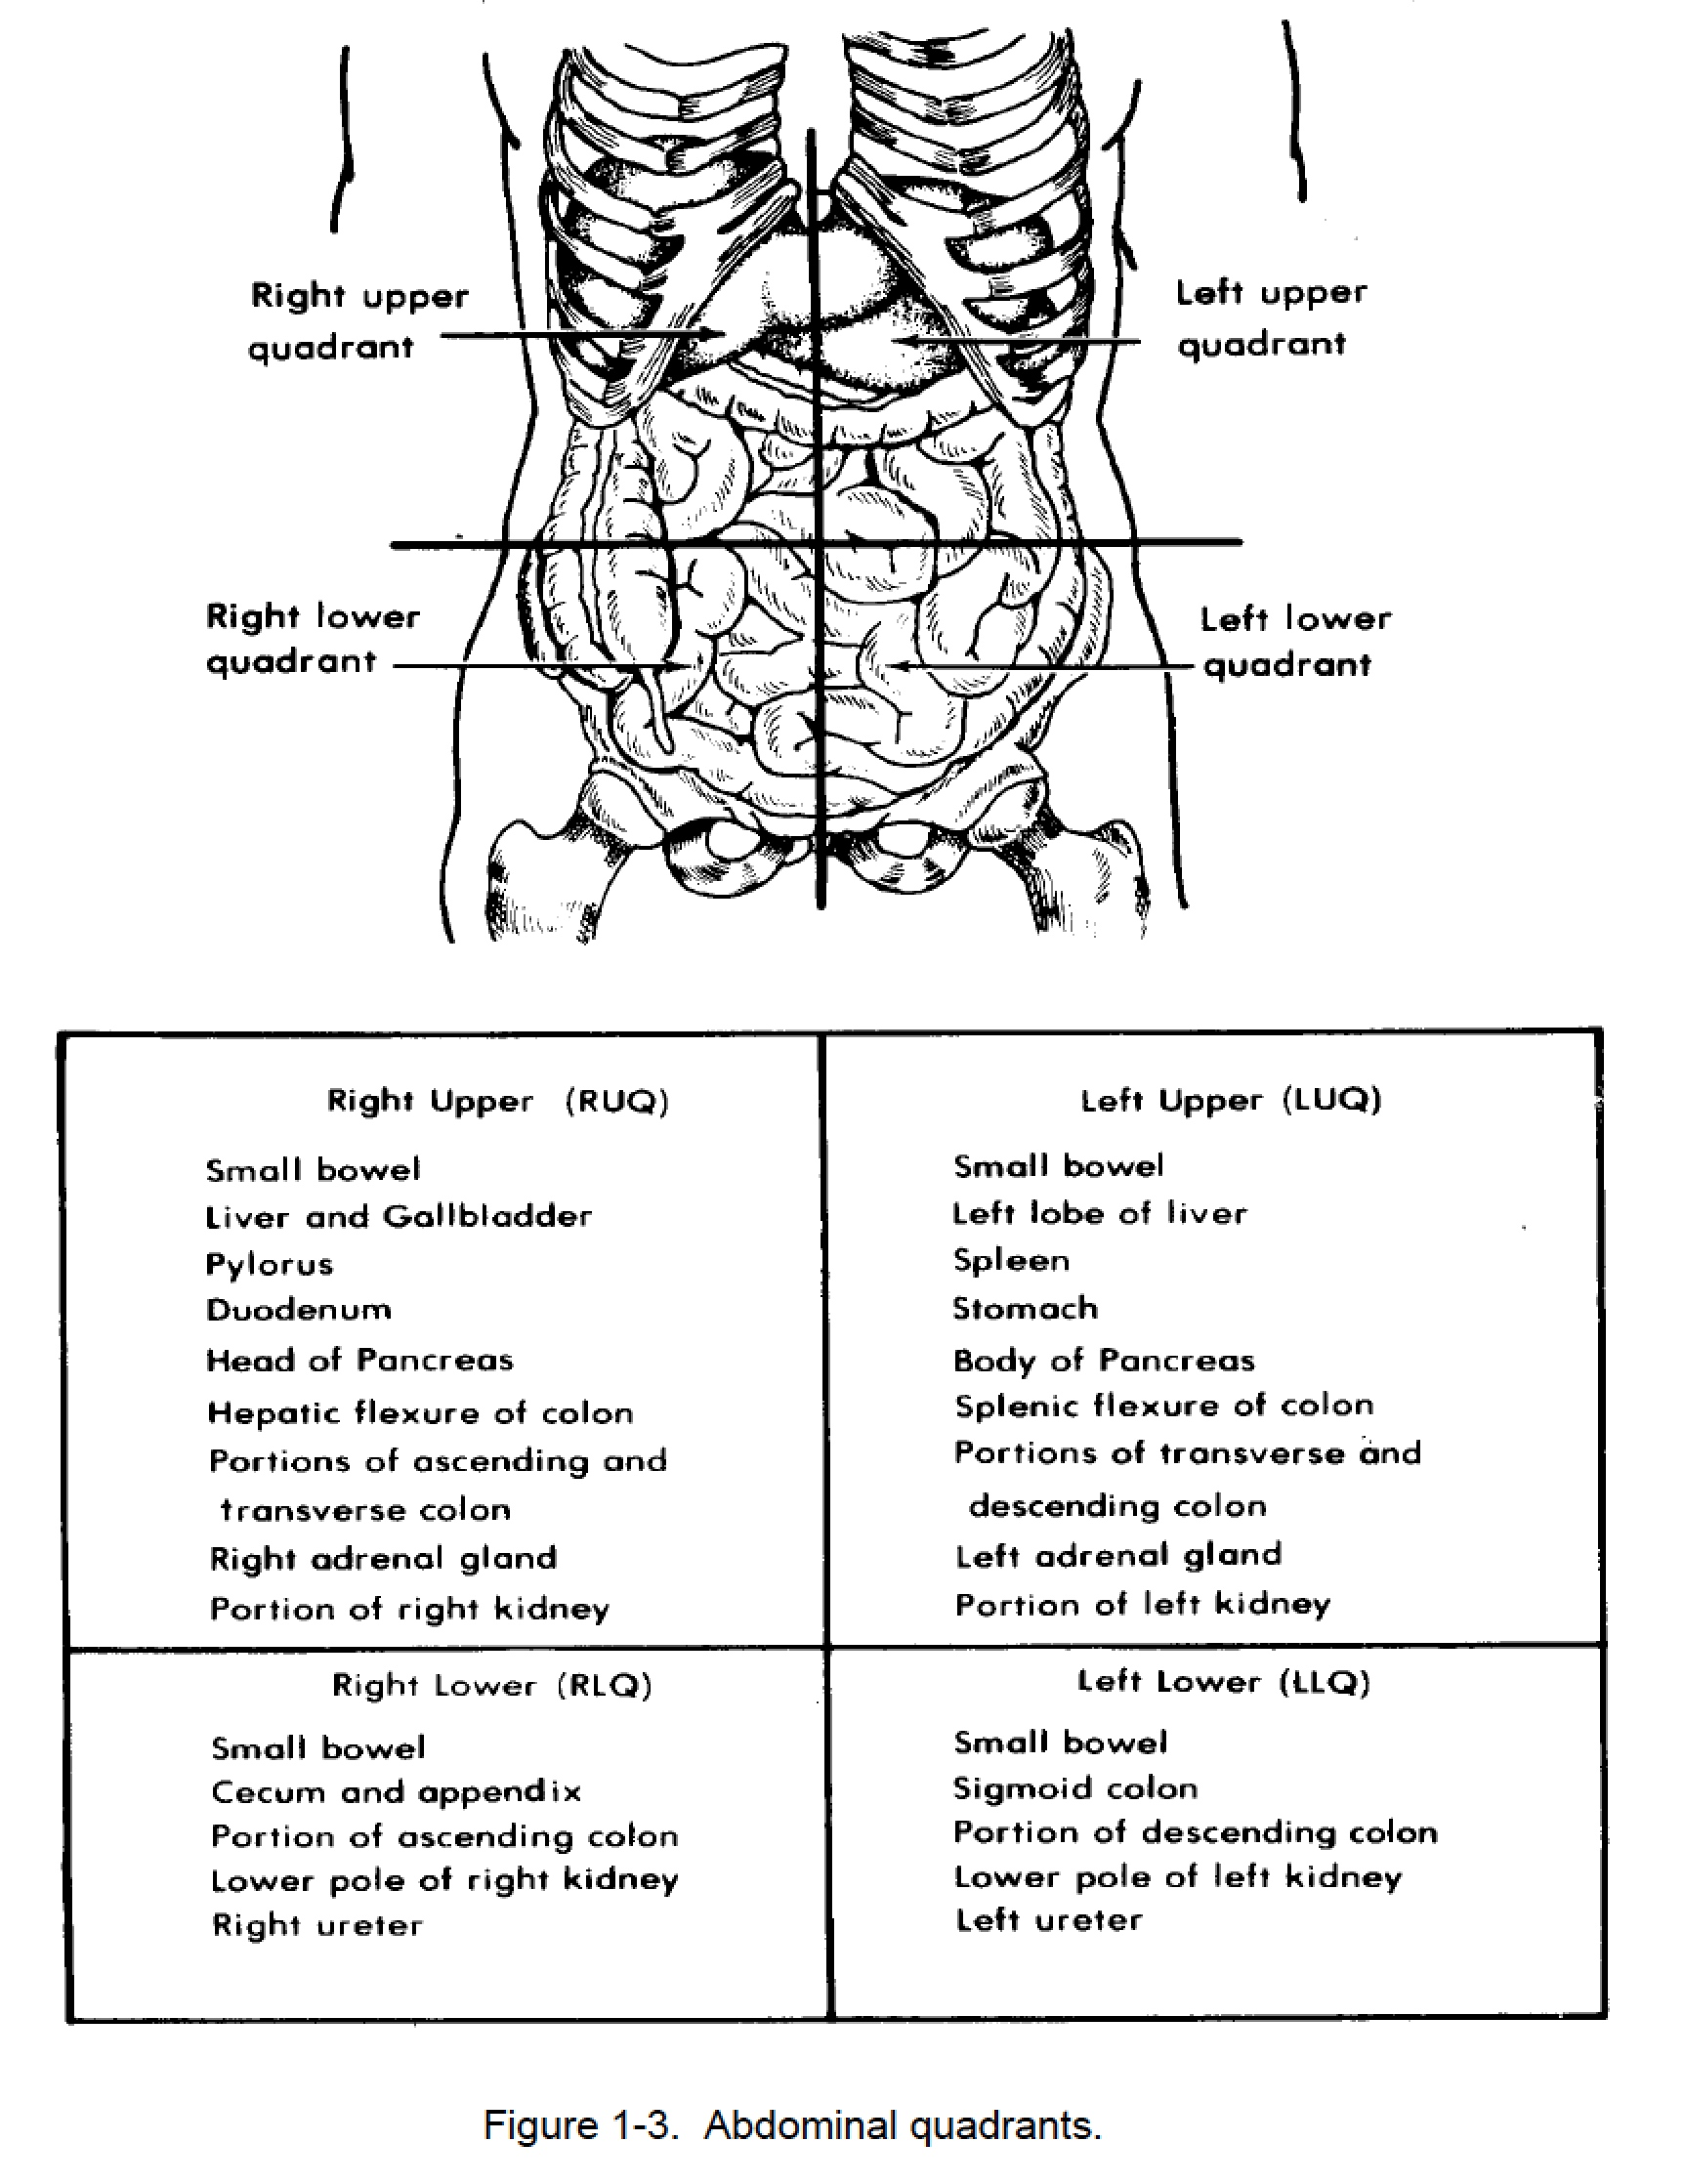 1 16 Examination Of The Abdomen